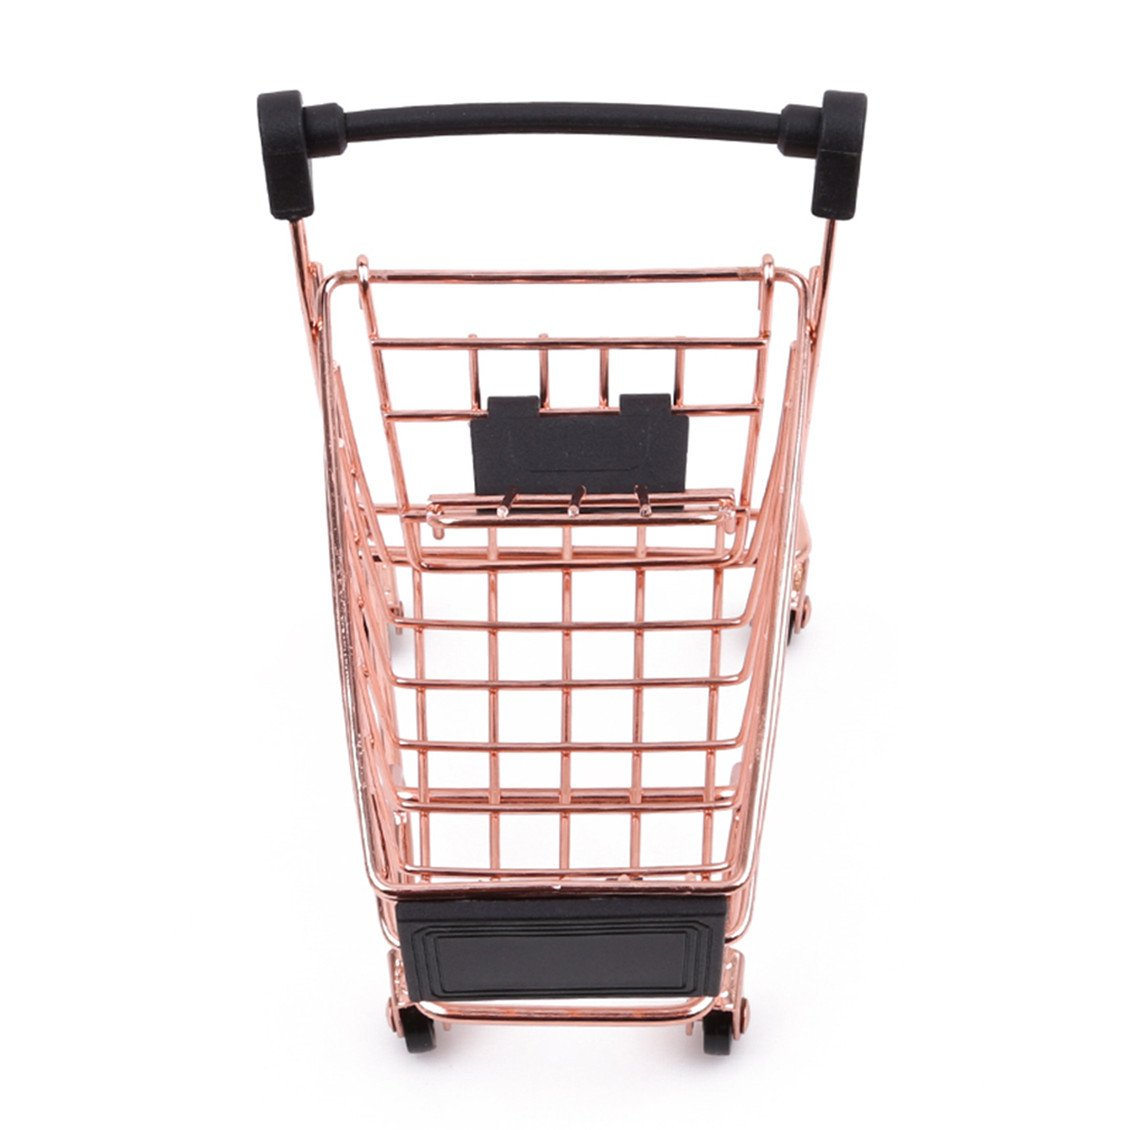 Dolland Mini Shopping Cart Supermarket Handcart Shopping Utility Cart Storage Toy Basket Desk Pen Holder,S-Rose Gold by Dolland (Image #3)